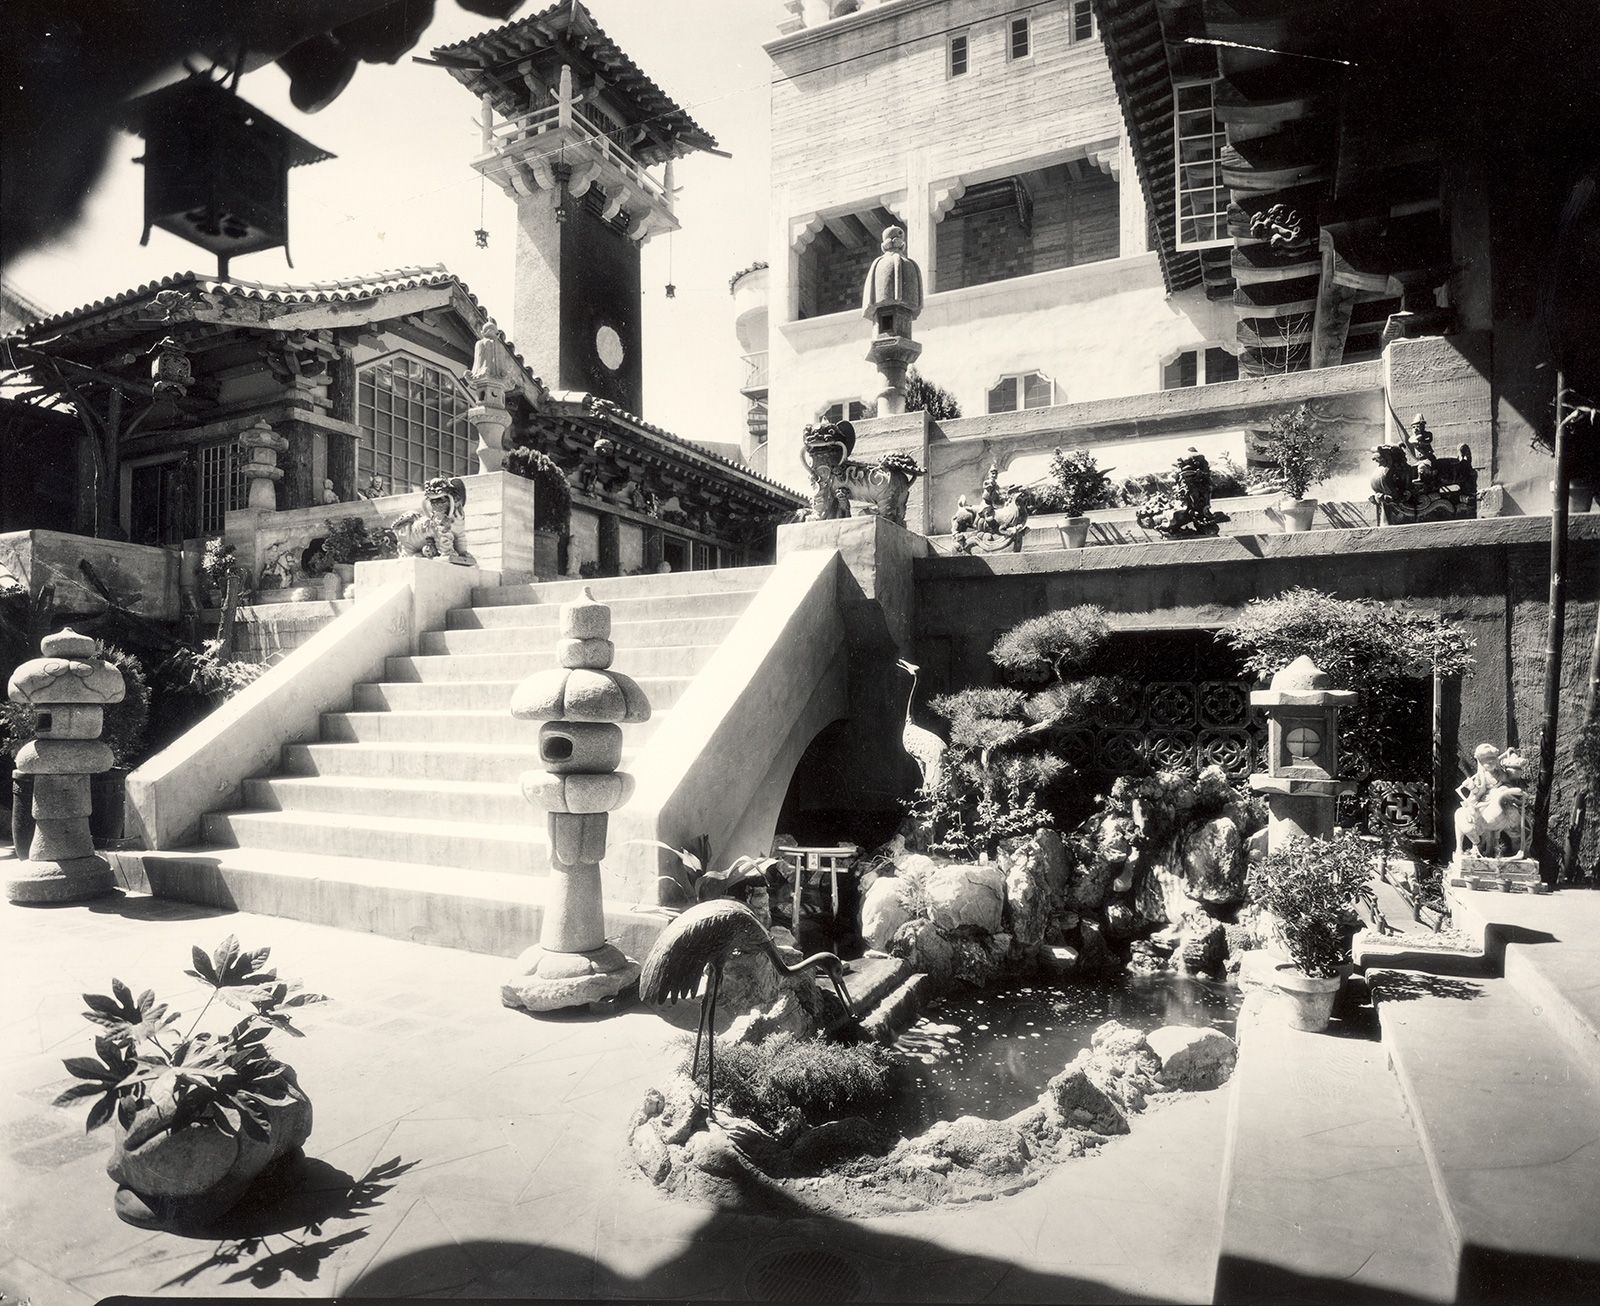 vintage image of Court of the Orient with exterior stairs